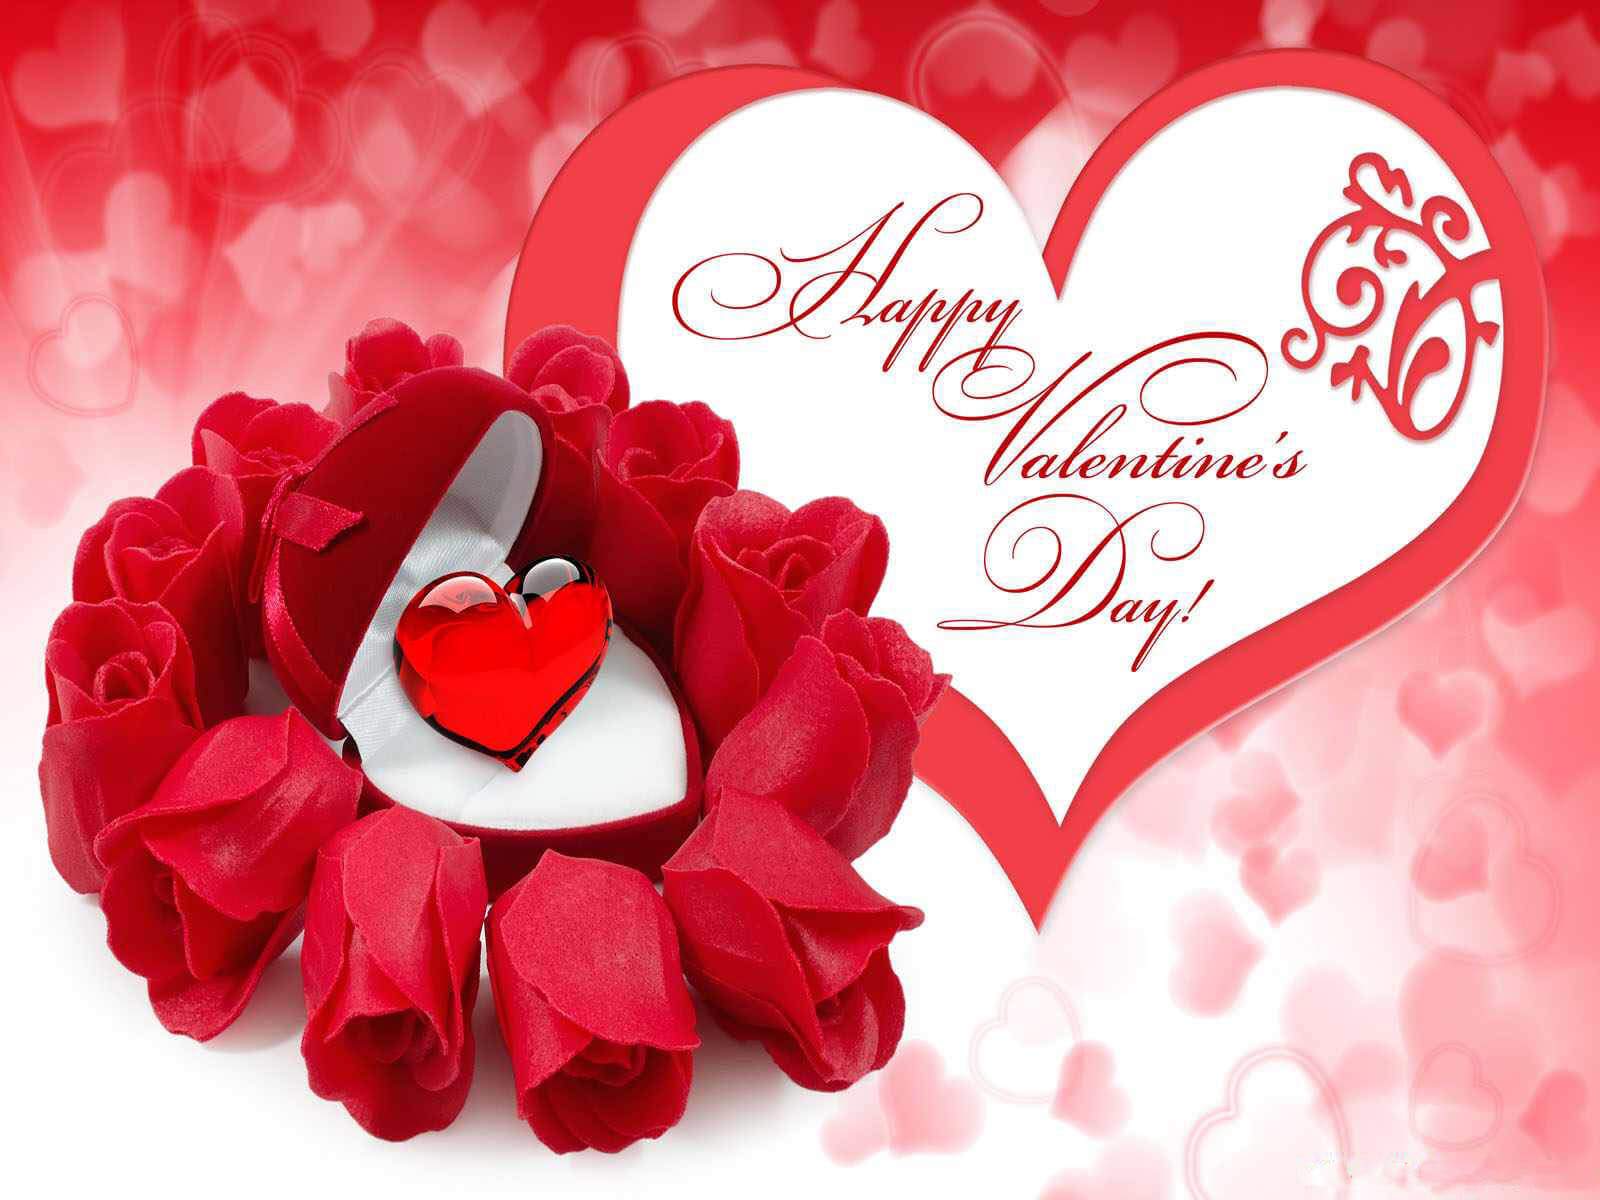 Happy Valentines Day Red Roses With Heart HD Wallpaper Image